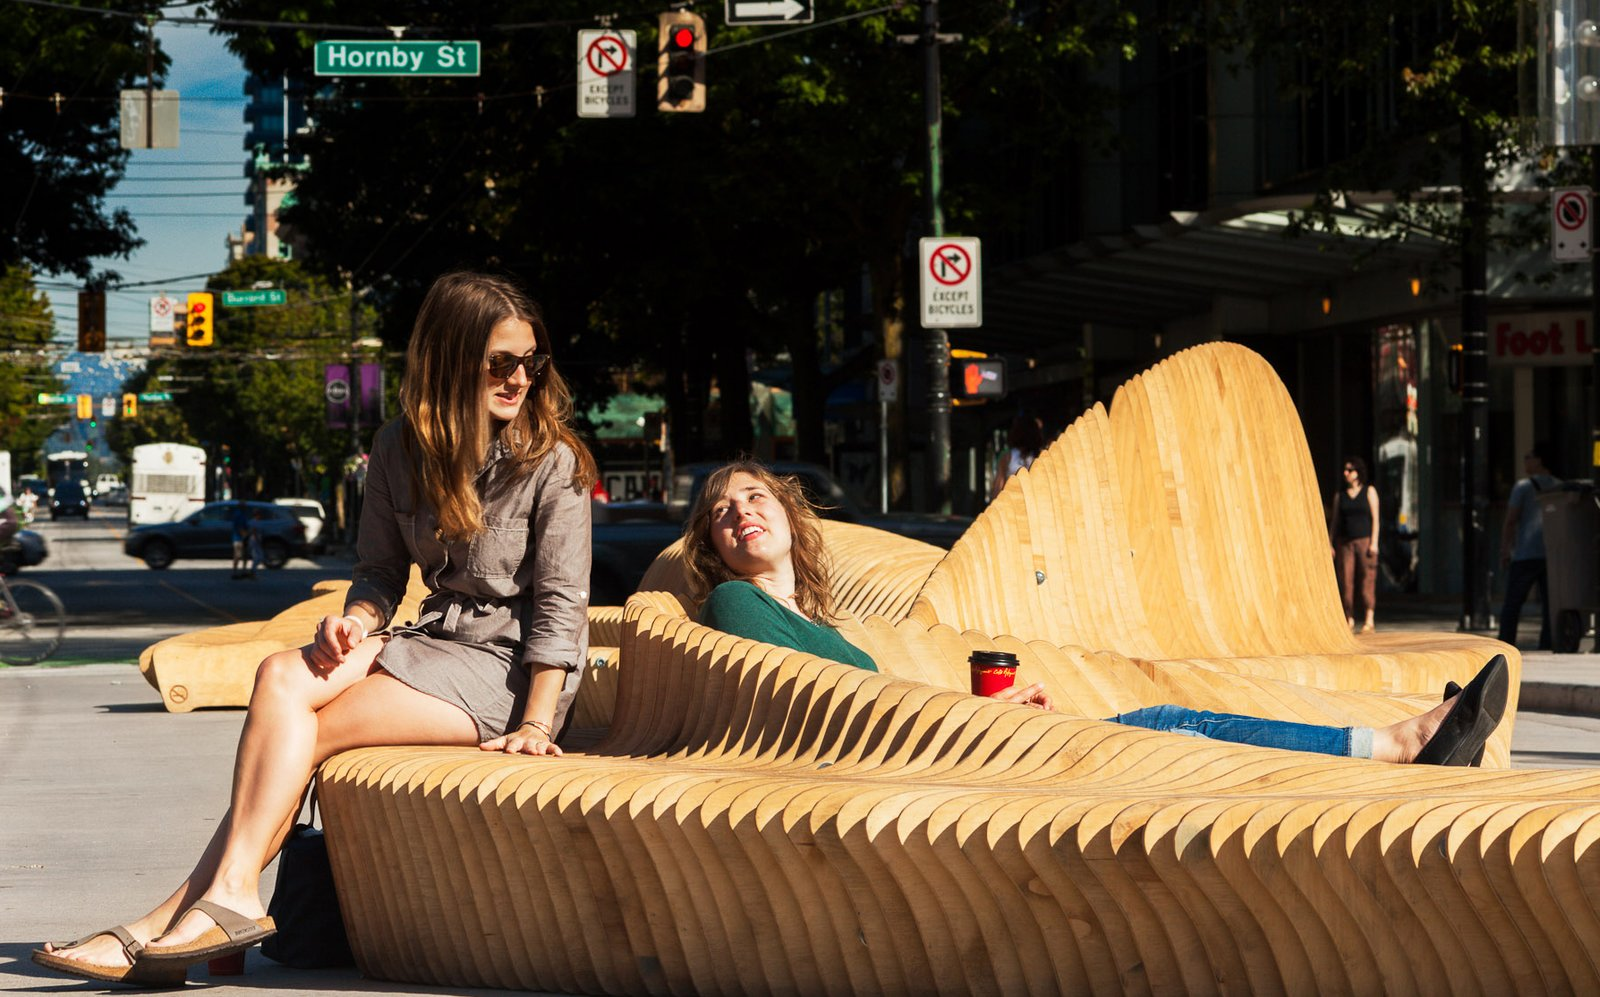 Kaz Bremner, Jeremiah Deutscher, Michael Siy, and Kenneth Navarra, a local team of architects, designers, and carpenters, created Urban Reef, which was selected as the winning design from among 78 entries.  100+ Best Modern Seating Designs by Dwell from Cool Public Benches in Vancouver